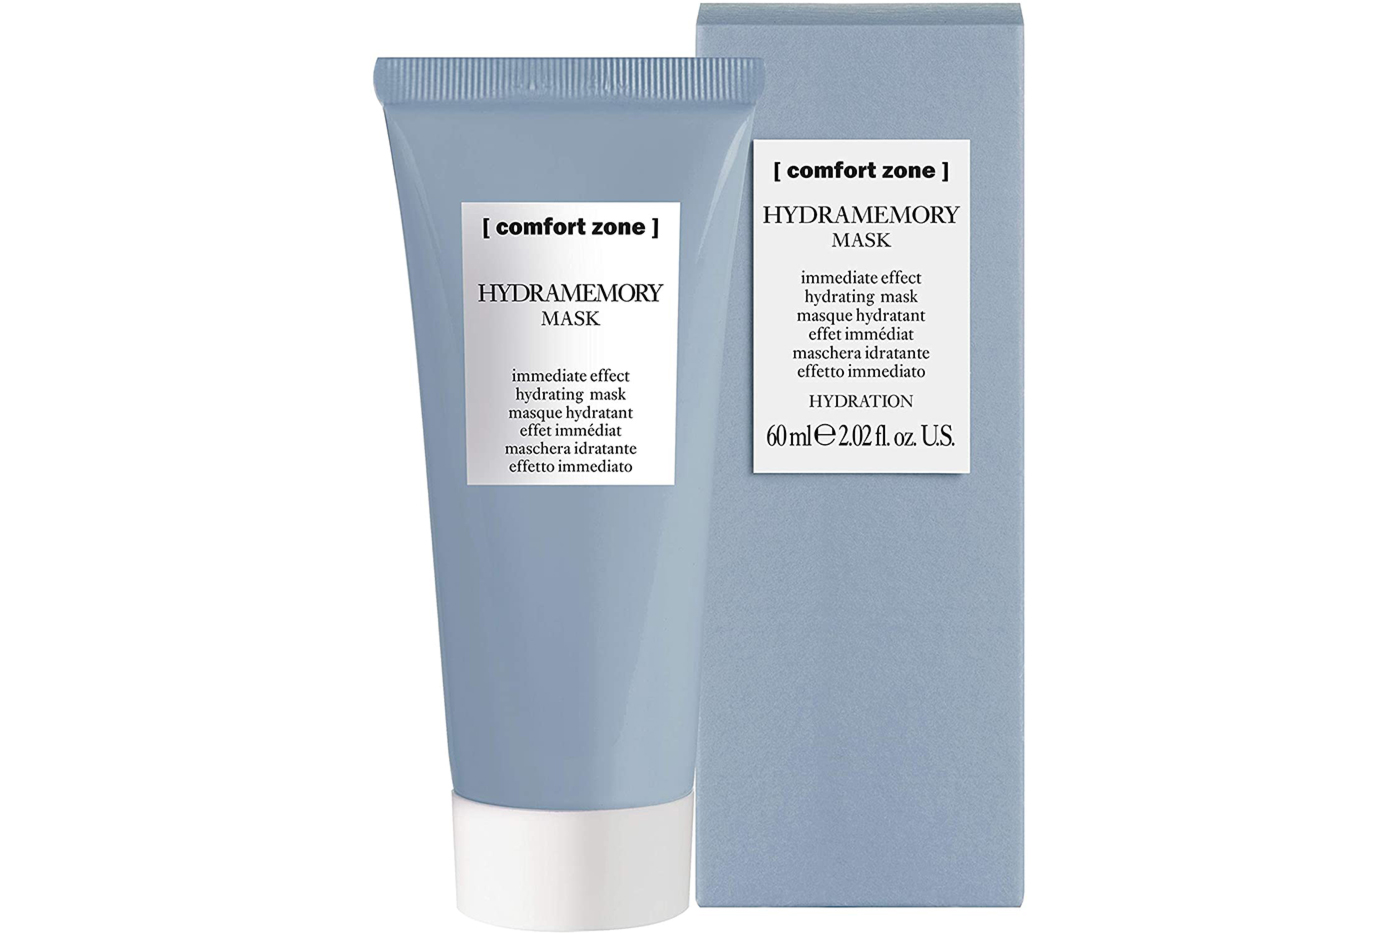 Hydration boost for dry skin with Comfort Zone